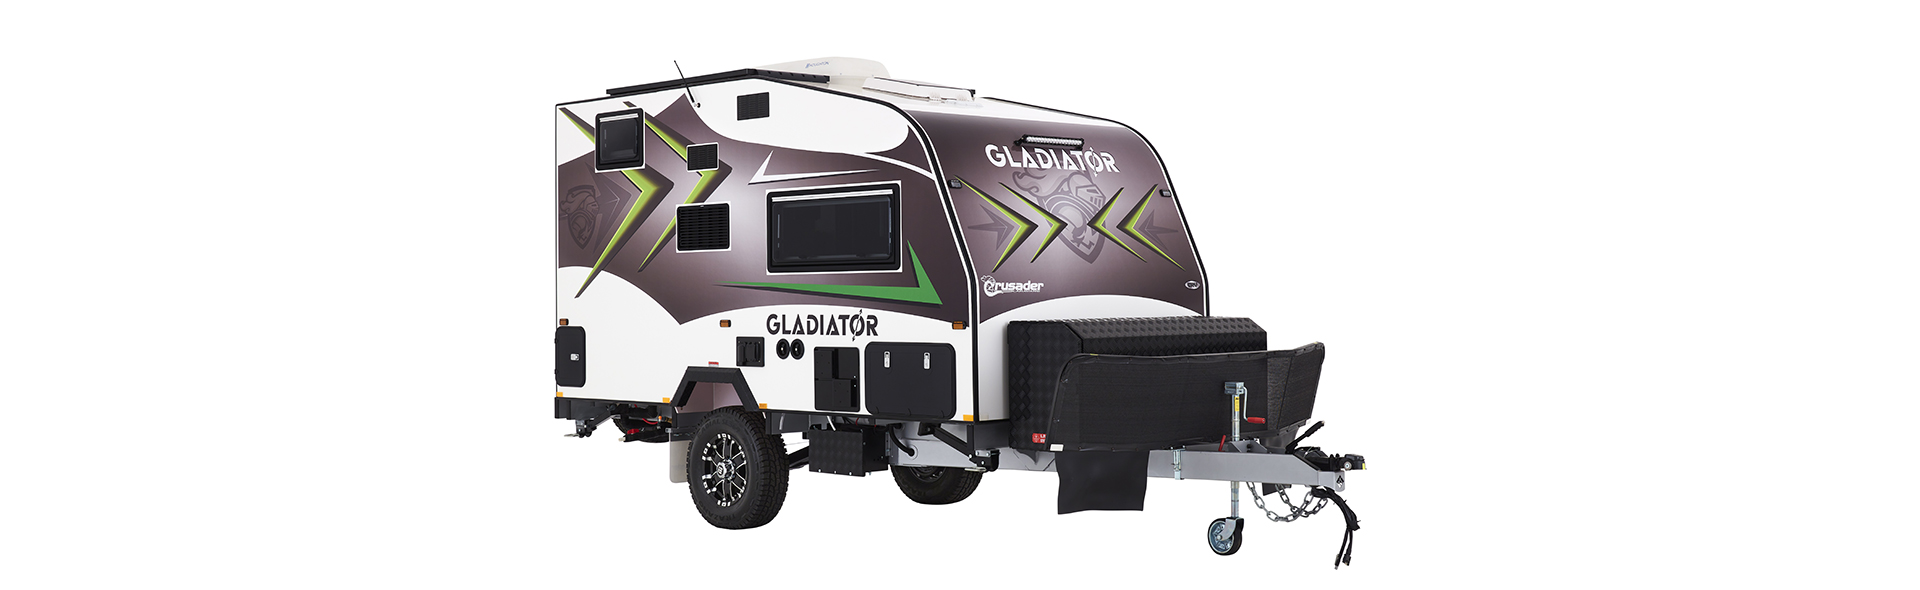 The Gladiator is not only extremely functional, it is beautifully made and fantastic looking.